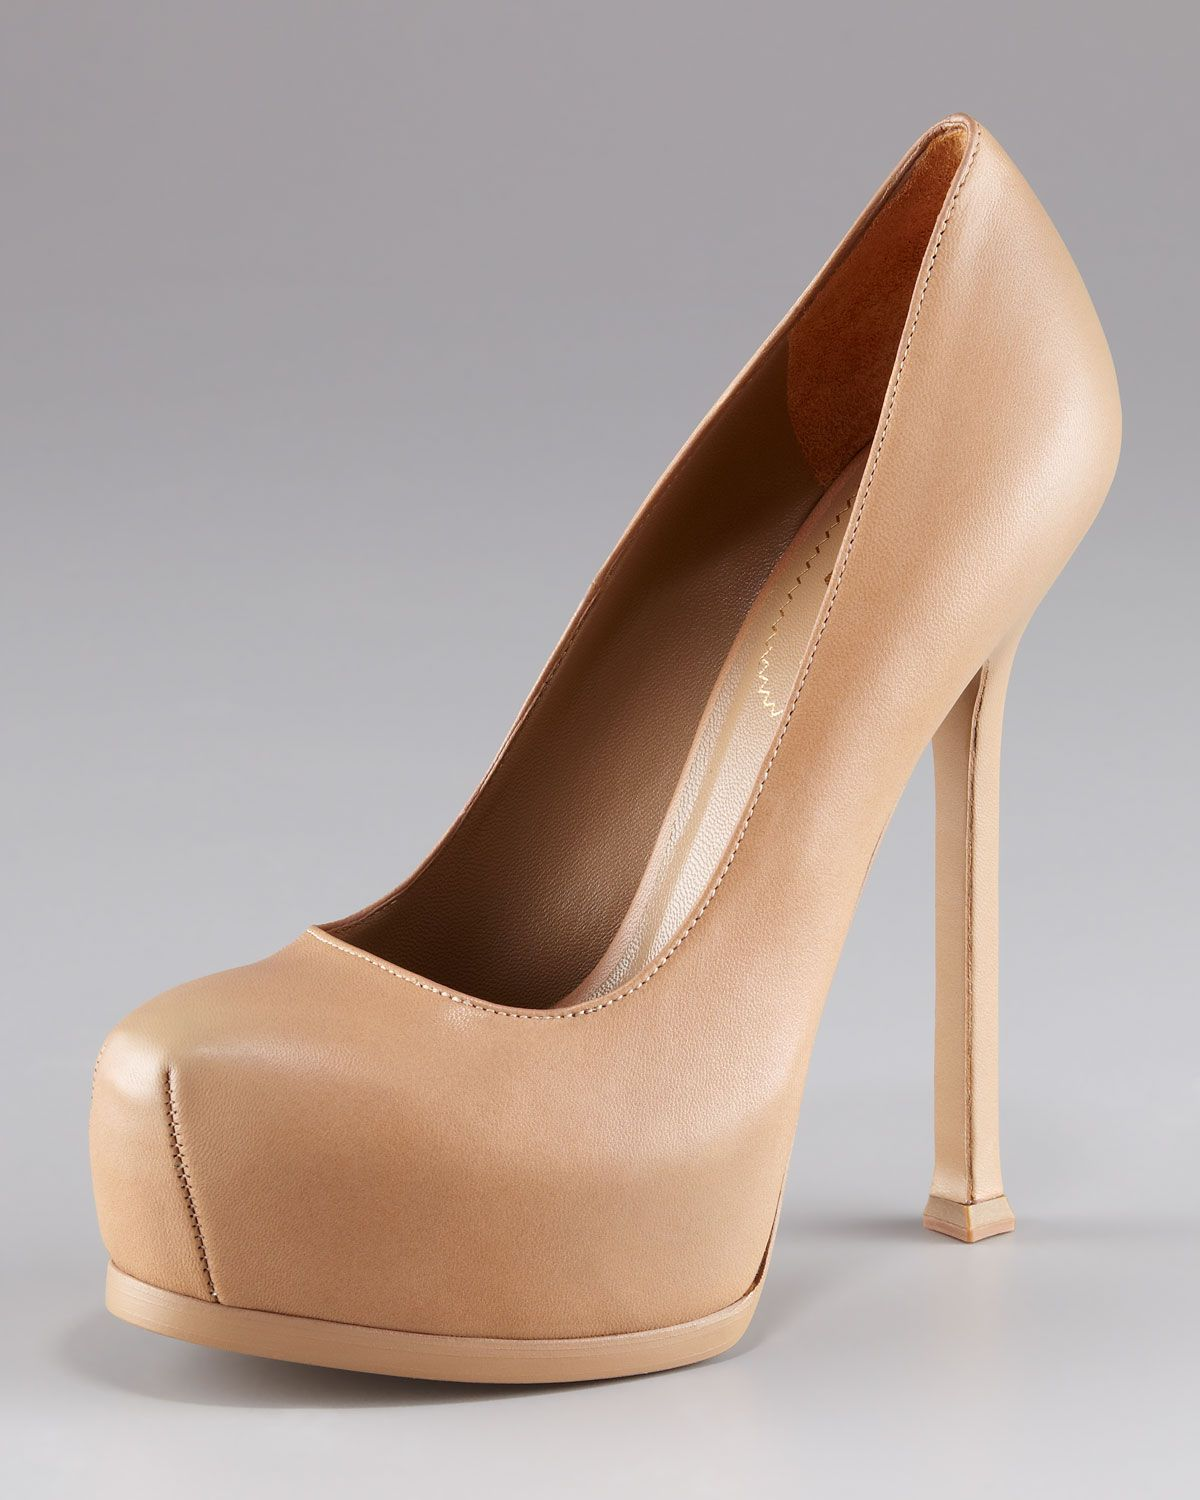 Yves Saint Lau Tribtoo Platform Pumps In